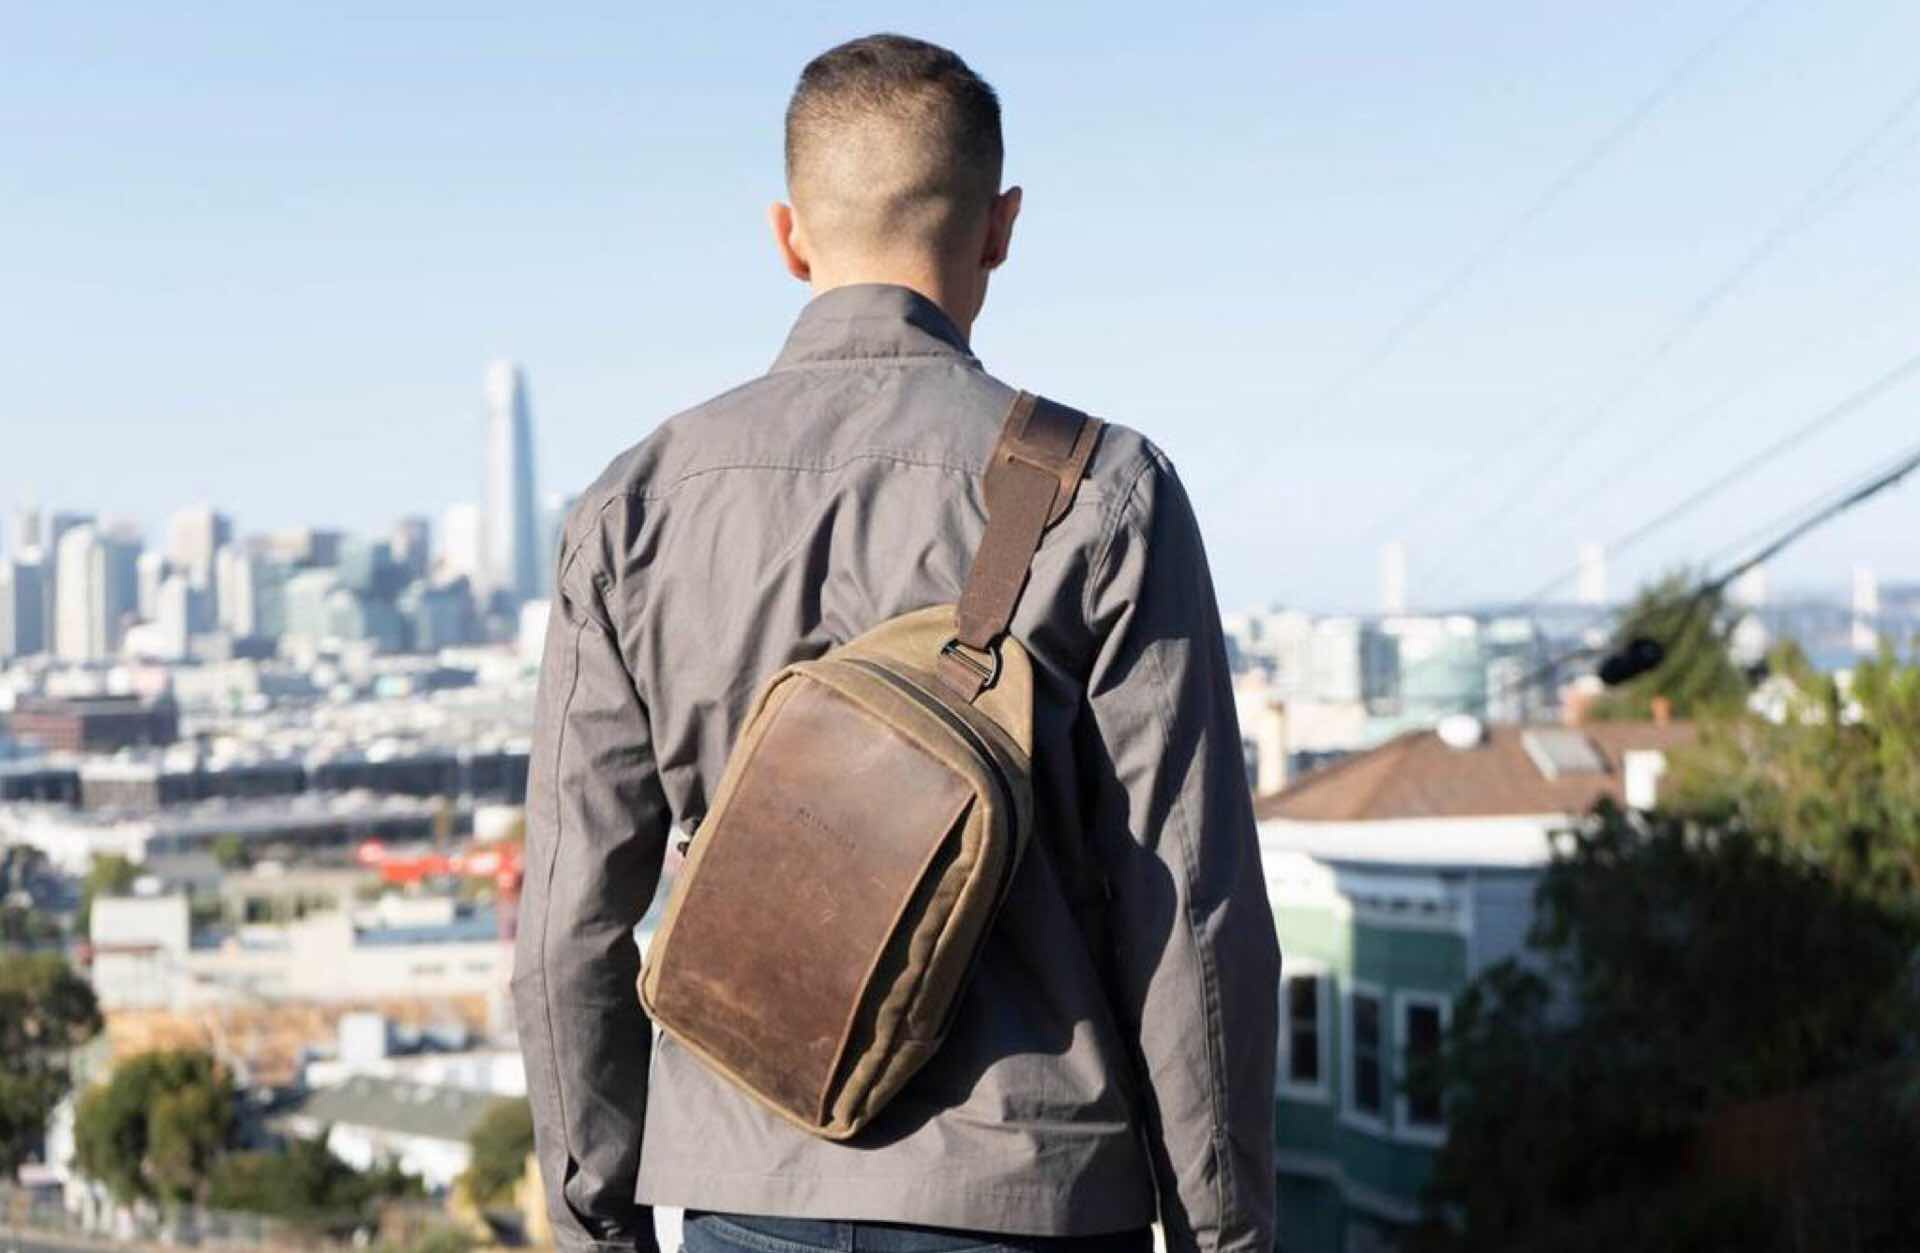 waterfield-designs-sutter-tech-sling-bag